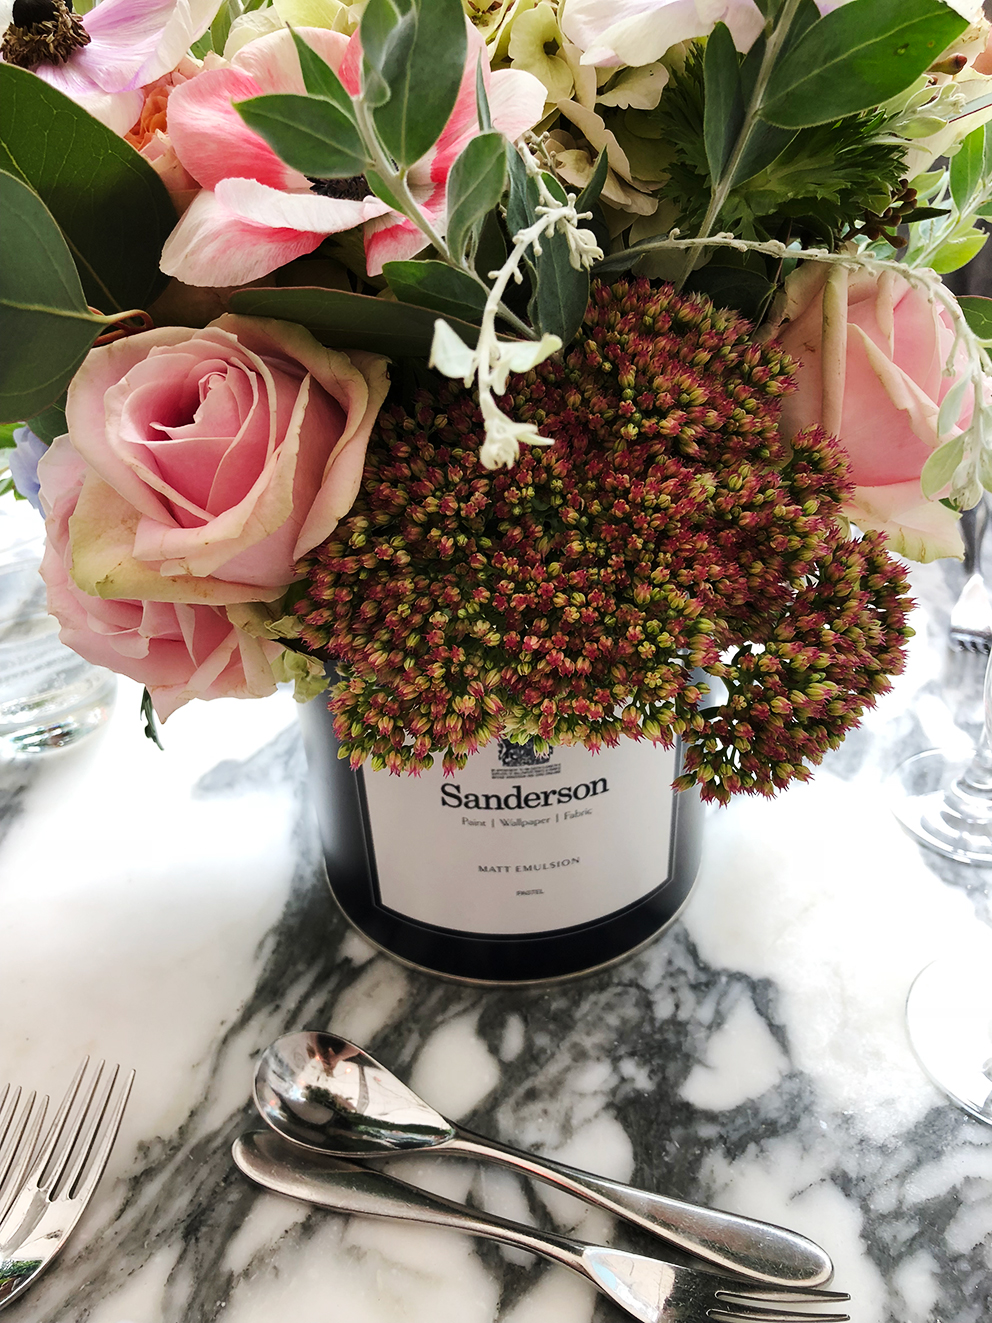 French For Pineapple Blog - Discovering Sanderson Paint - Sanderson Paint Can with Floral Display